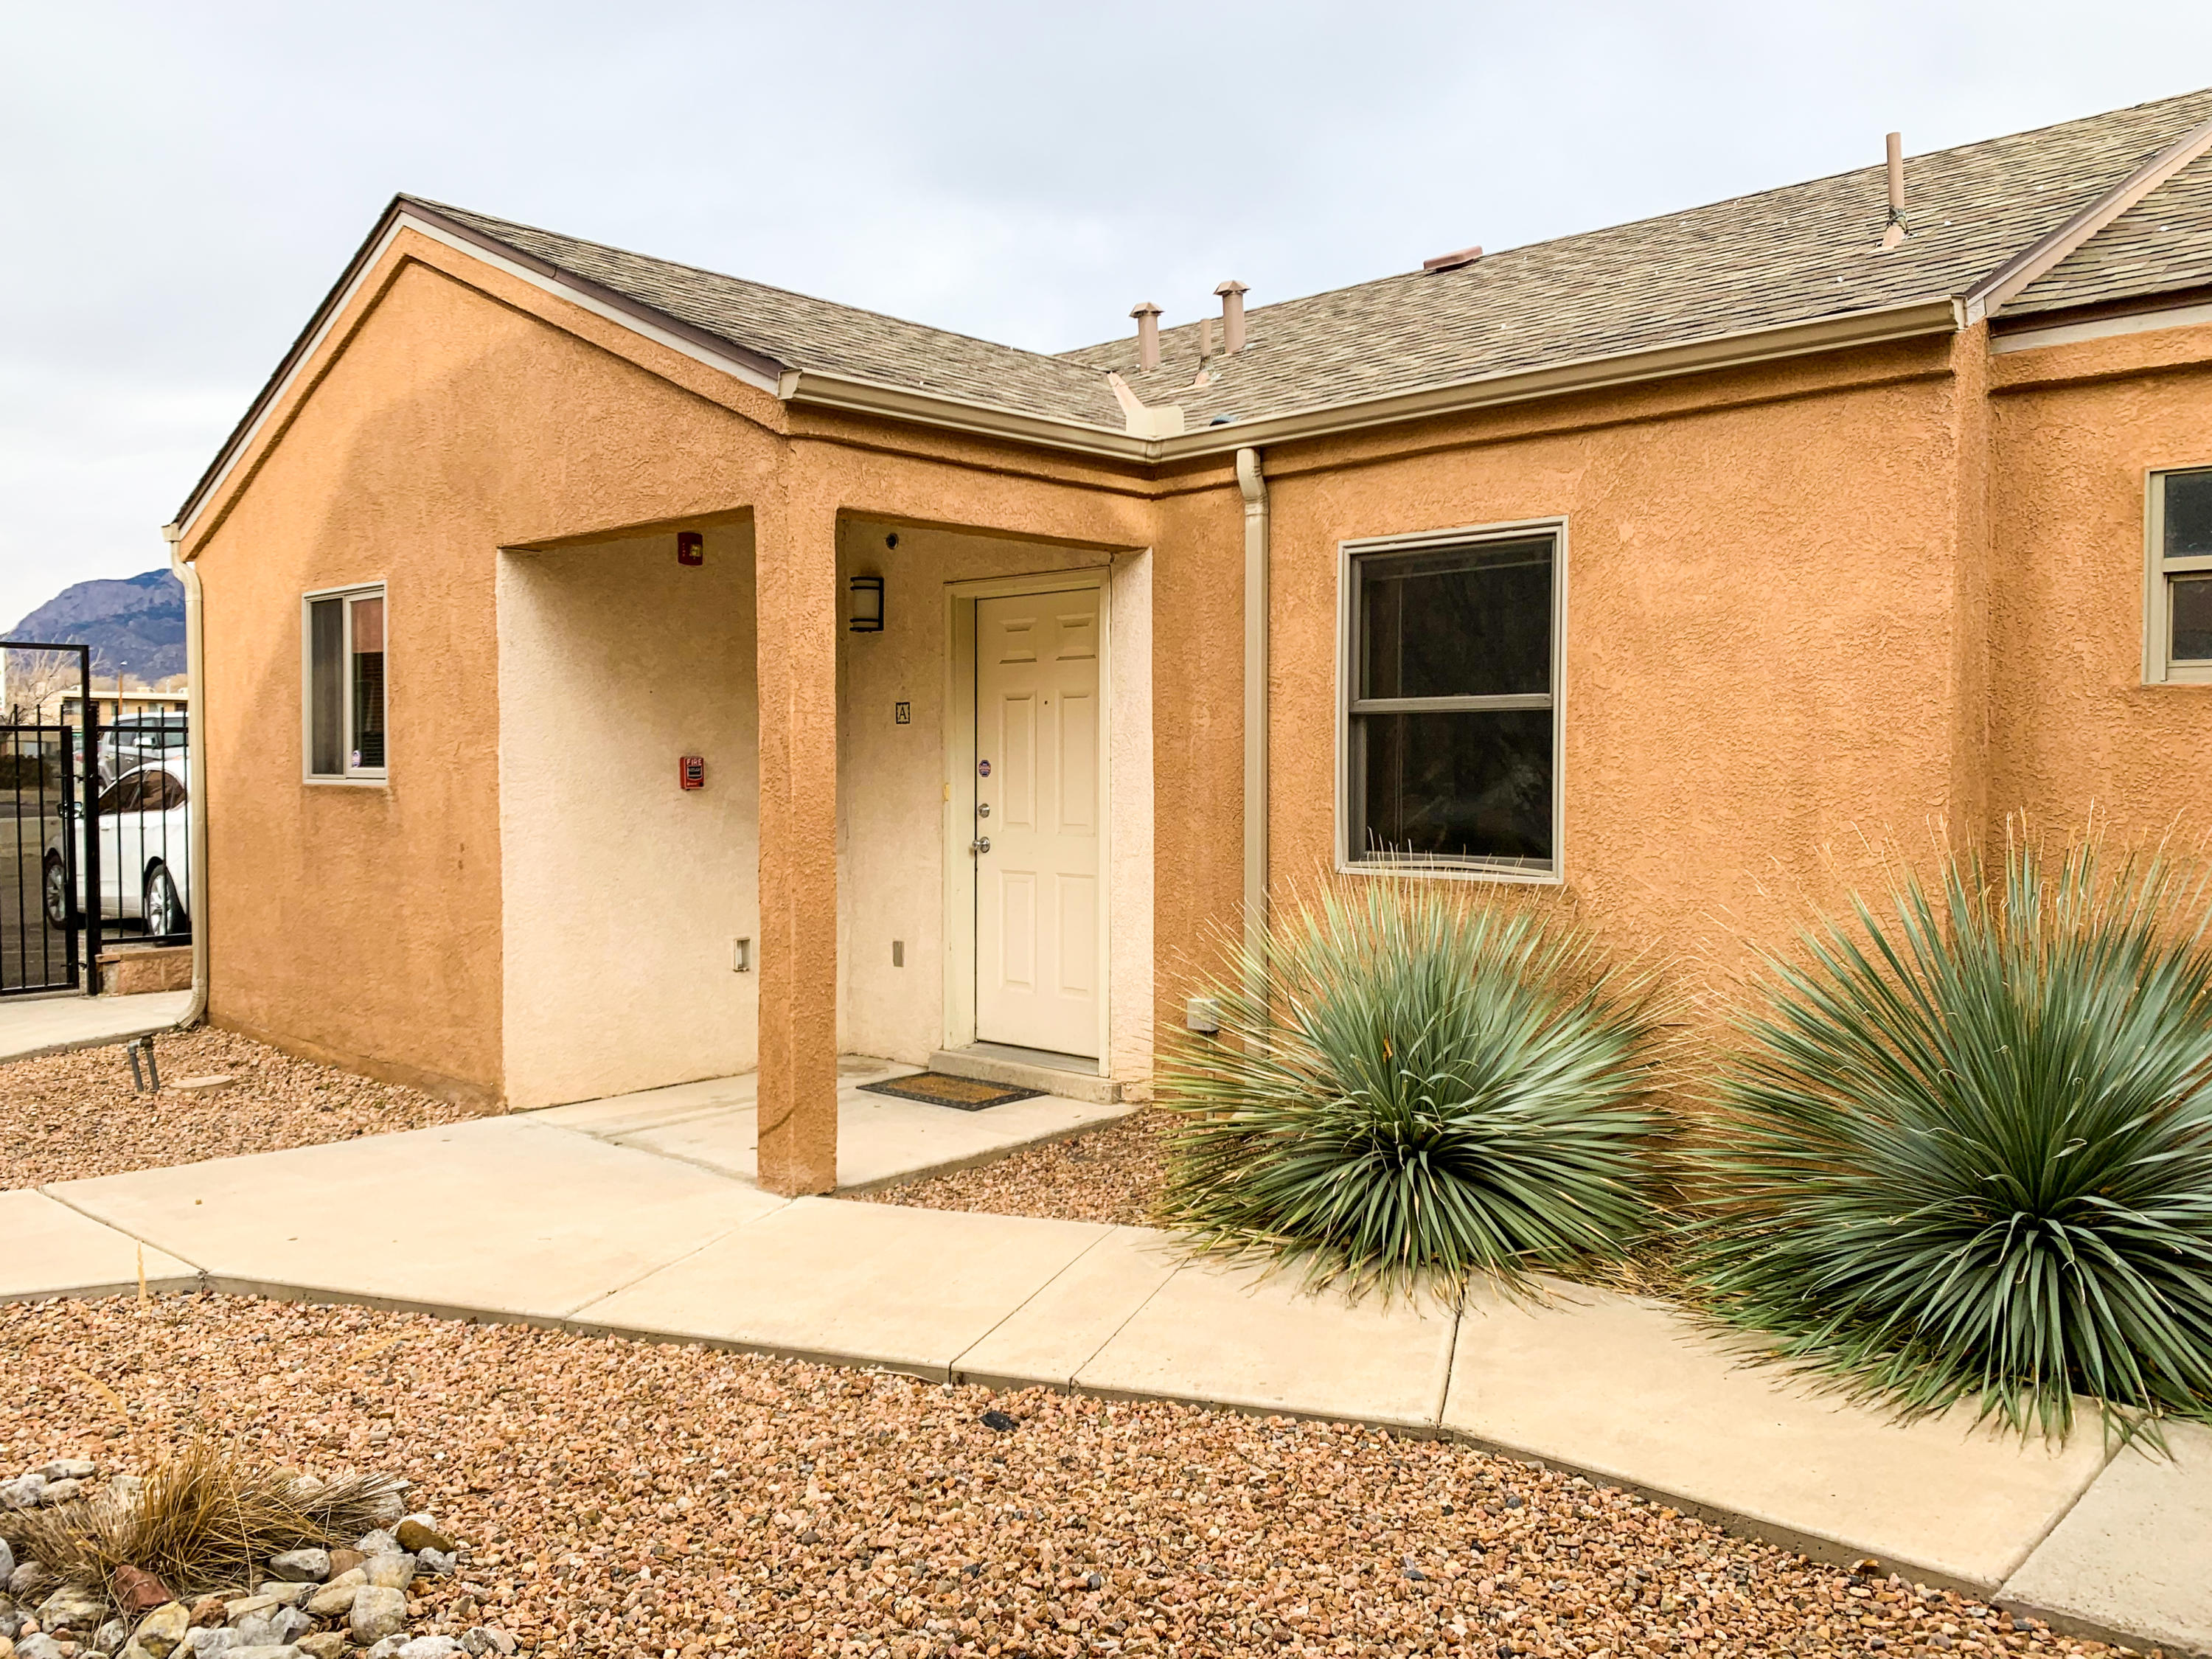 Built in 2007, owner added upgrades such as granite counter tops and title back splashes. Hardwood flooring, being repainted, new refrigerator, micro wave.  Great corner unit, with view of the Sendia's.